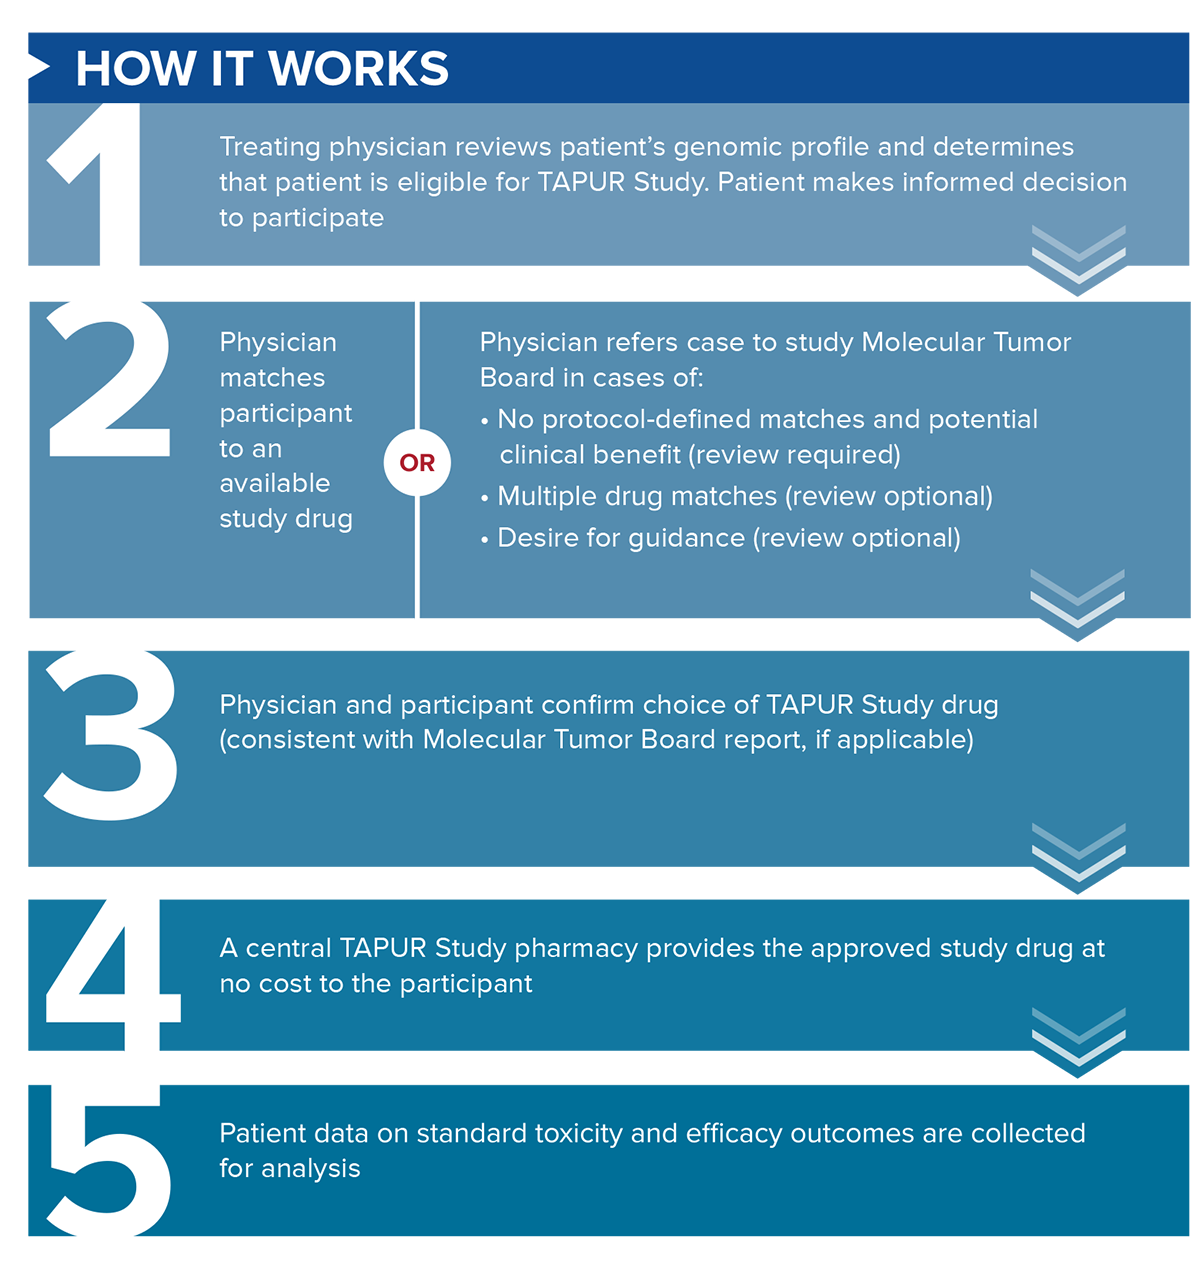 TAPUR Infographic: How it Works